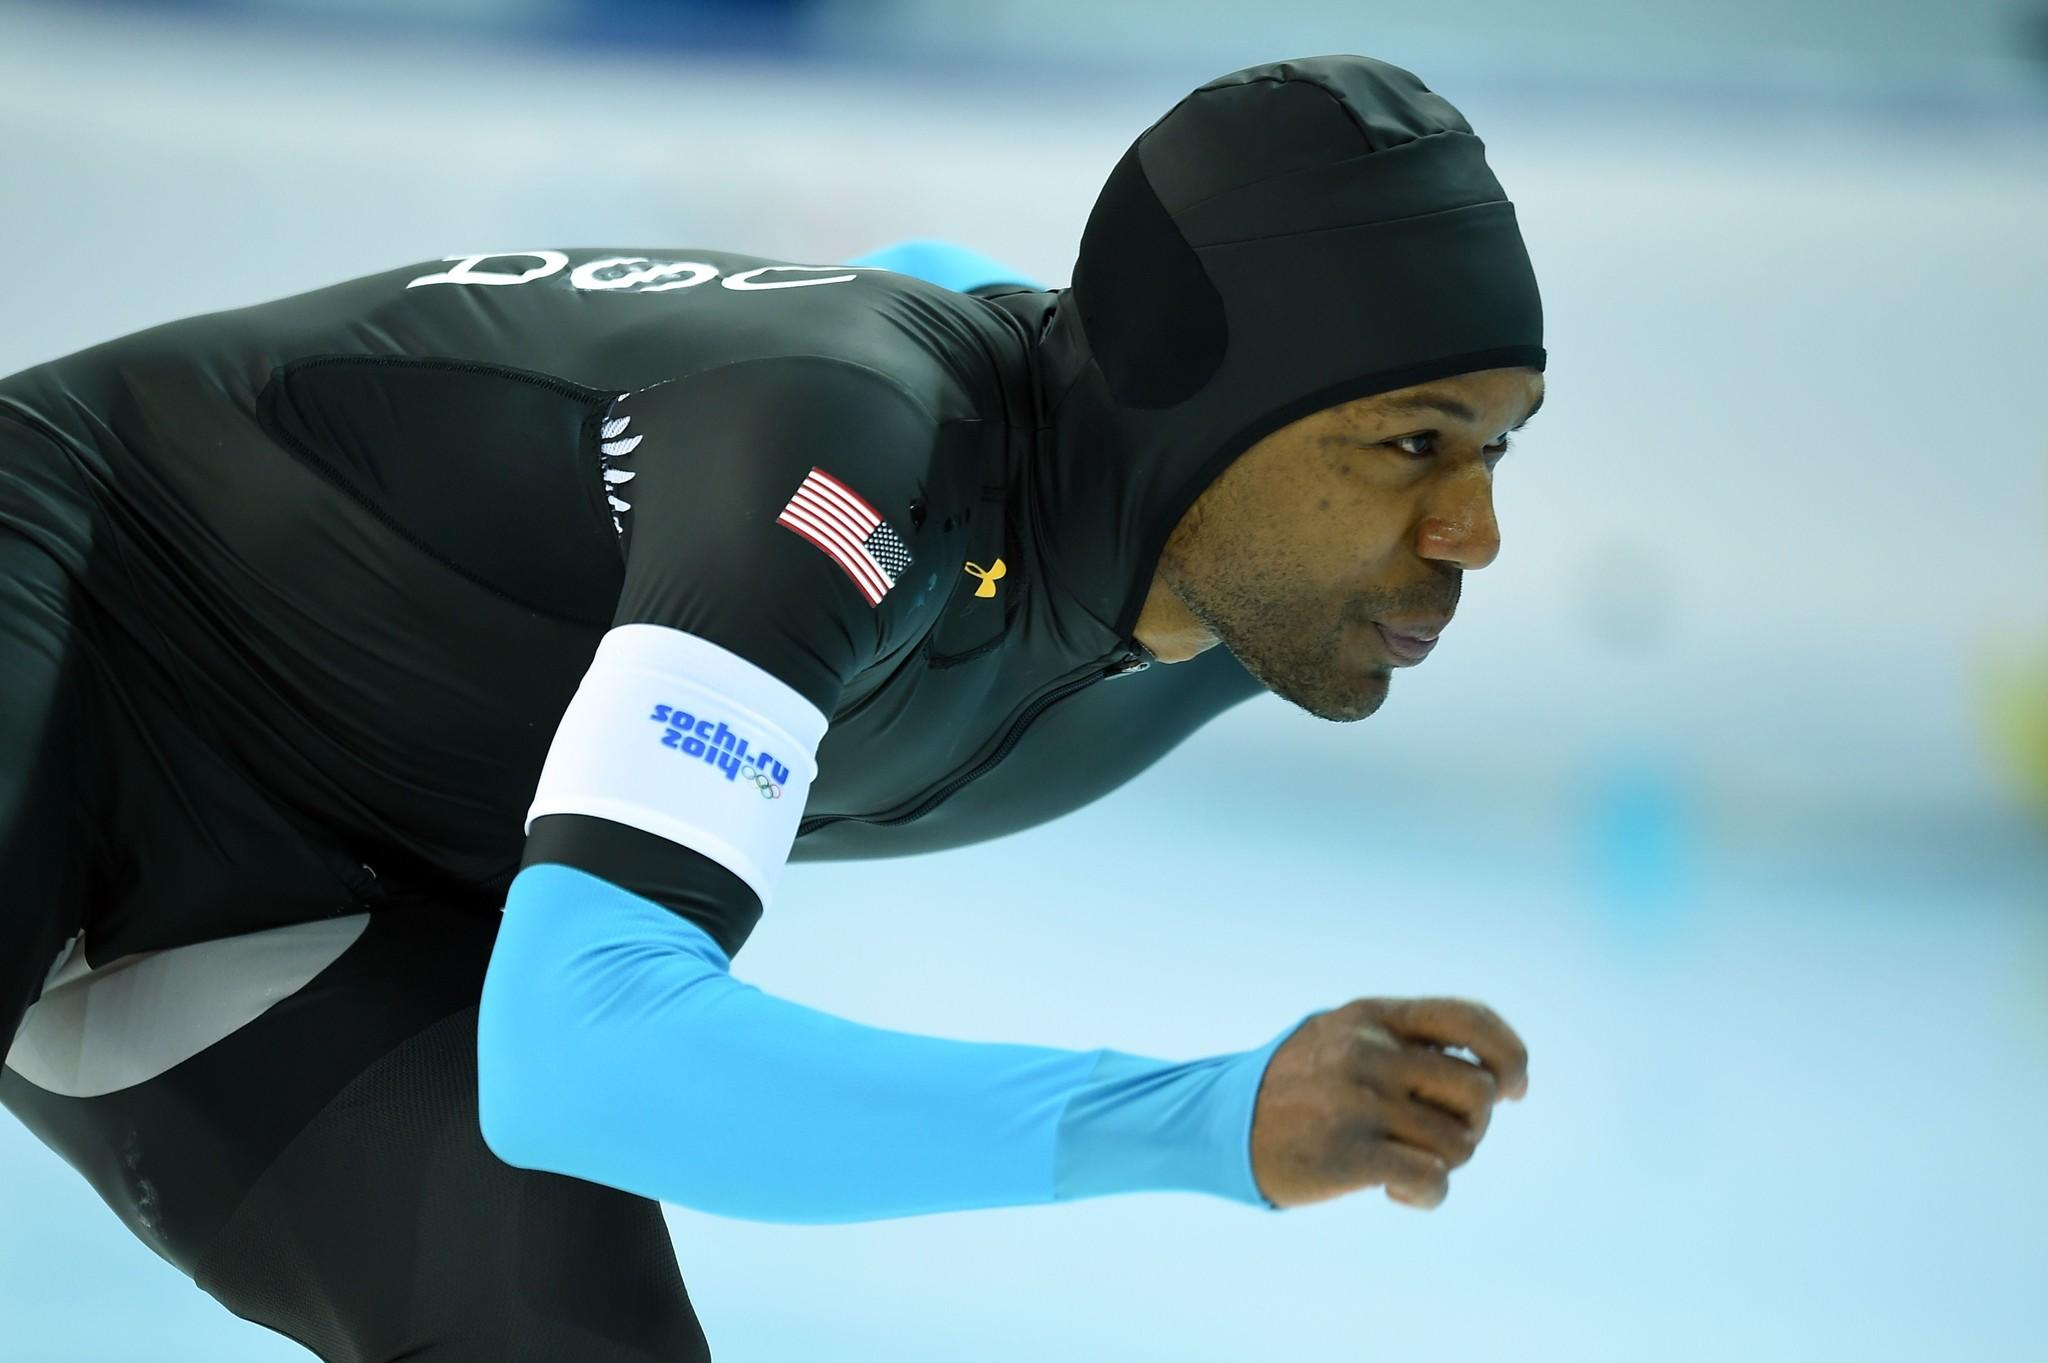 Shani Davis competes in the Men's Speedskating 1,500 meters at the Adler Arena during the Sochi Winter Olympics.